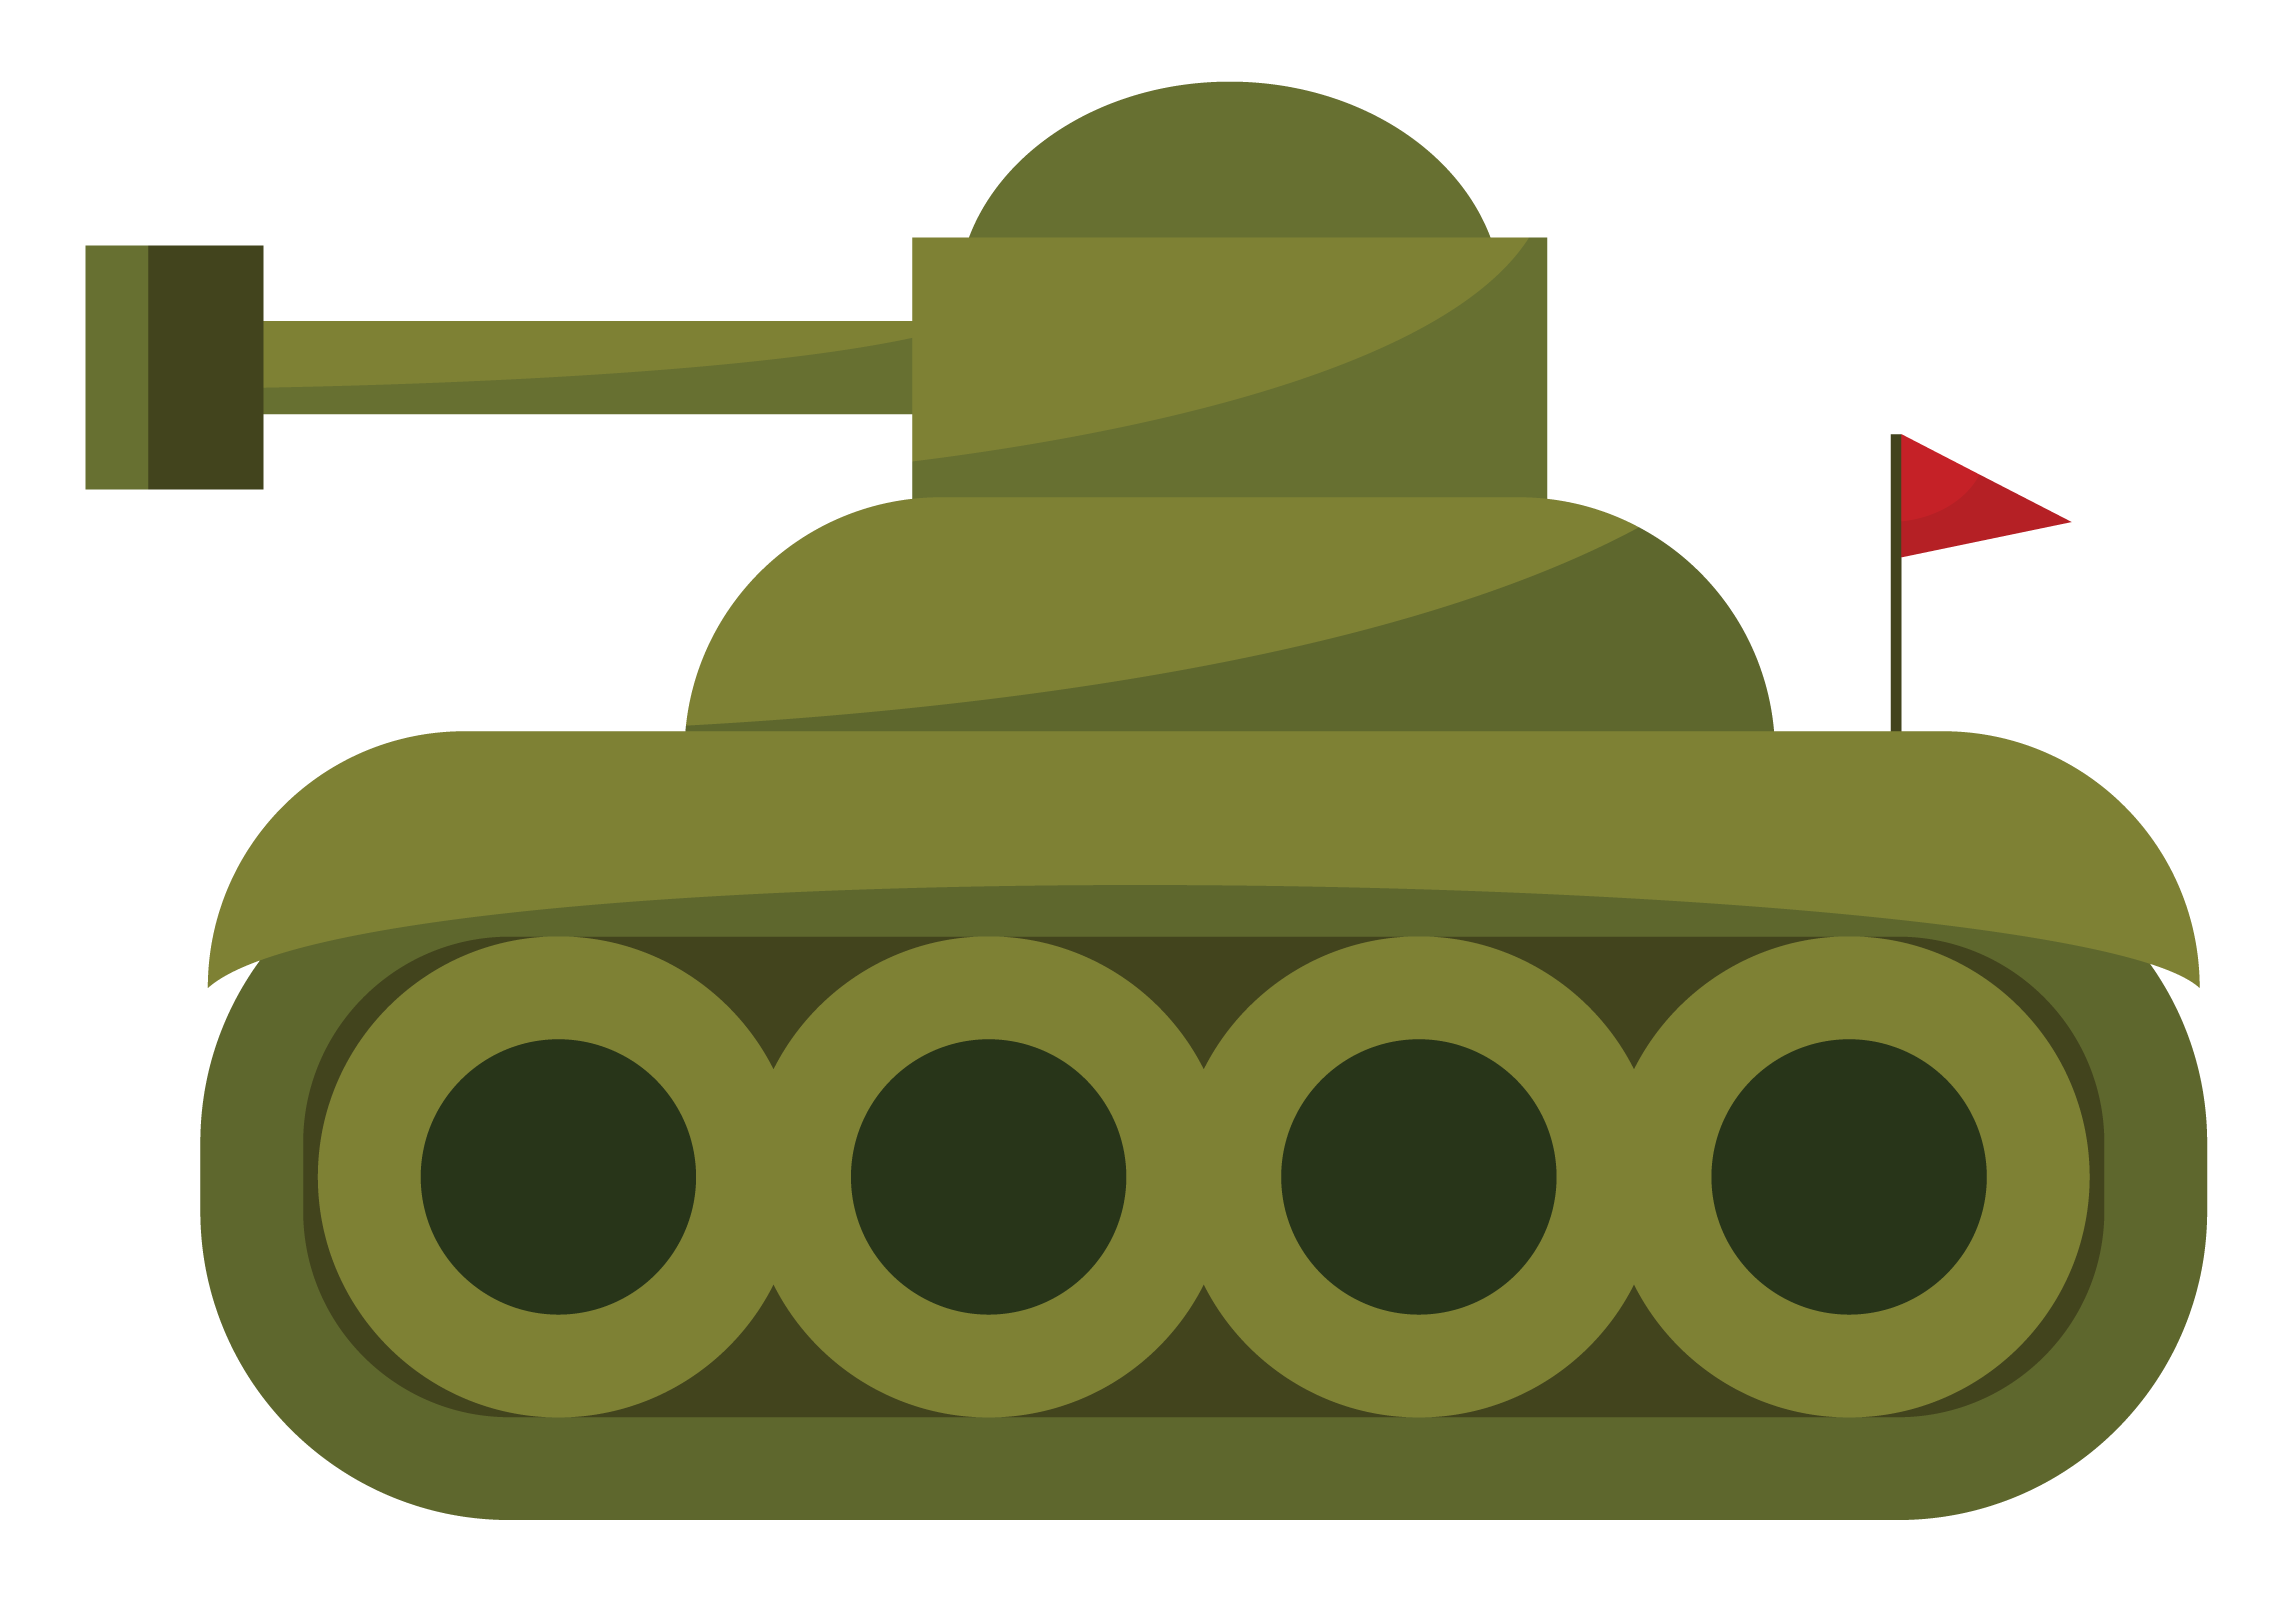 Easy dog at getdrawings. Army clipart army tank